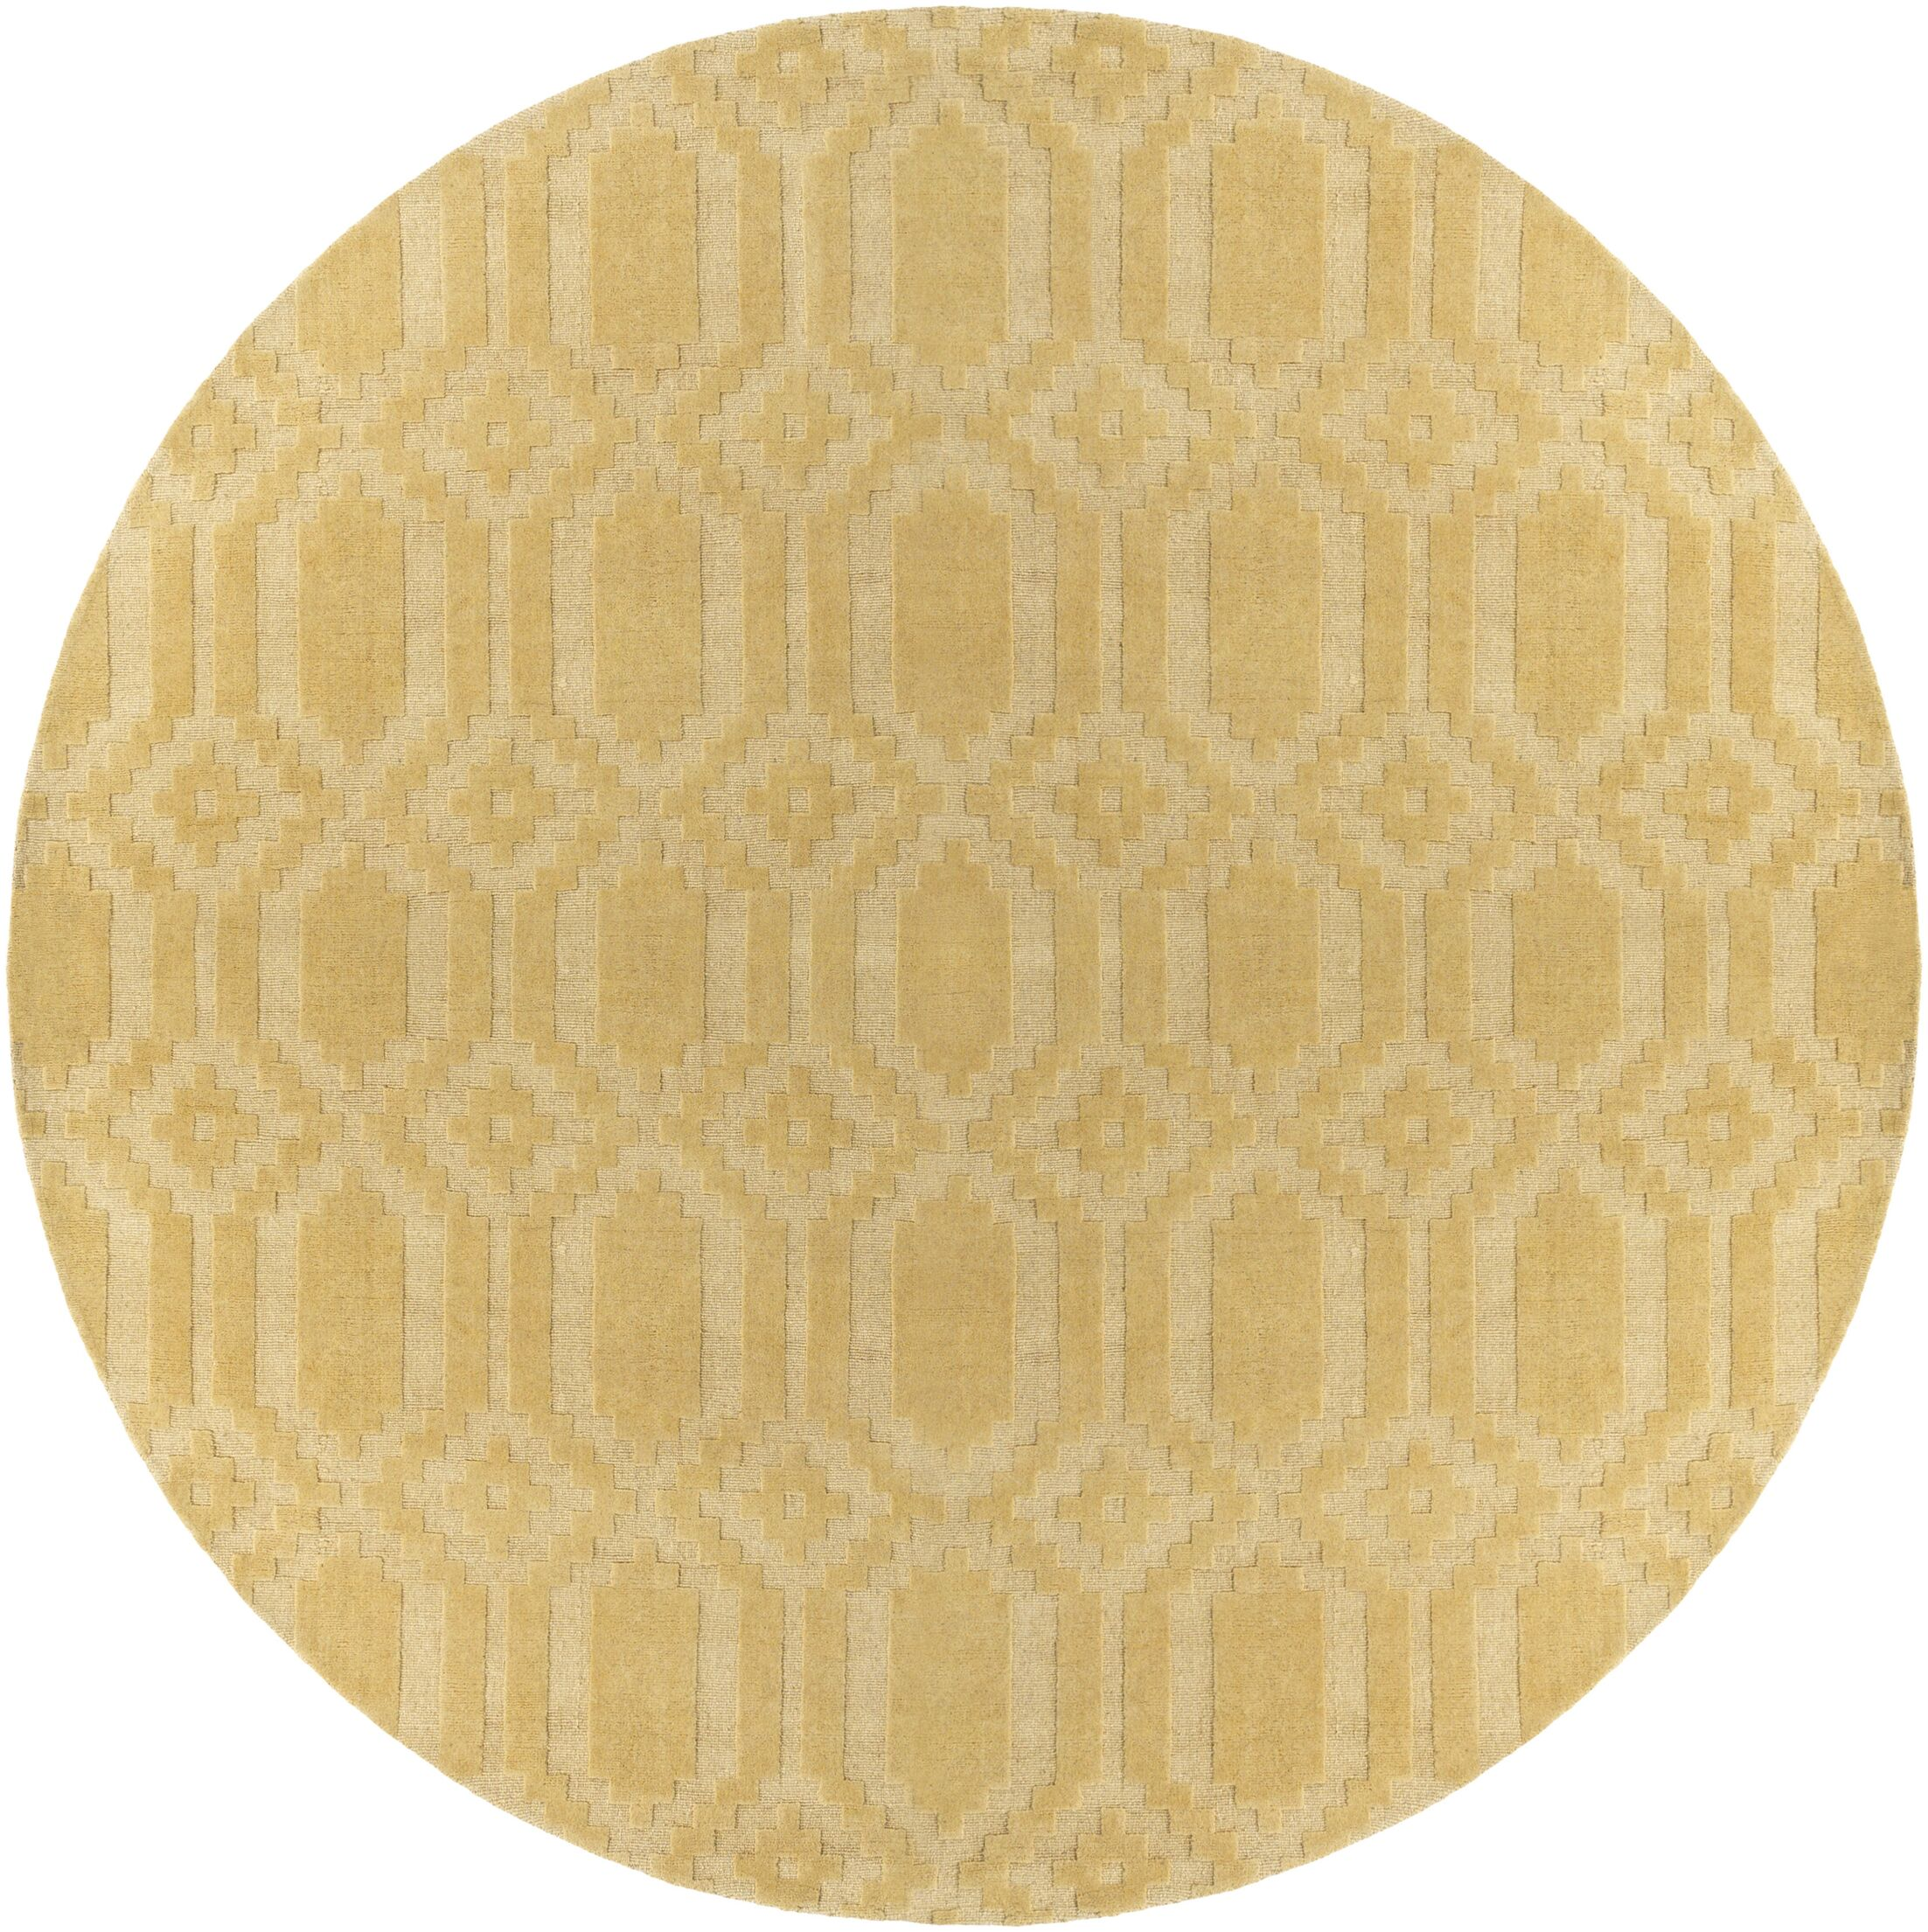 Brack Hand-Loomed Yellow Area Rug Rug Size: Round 9'9